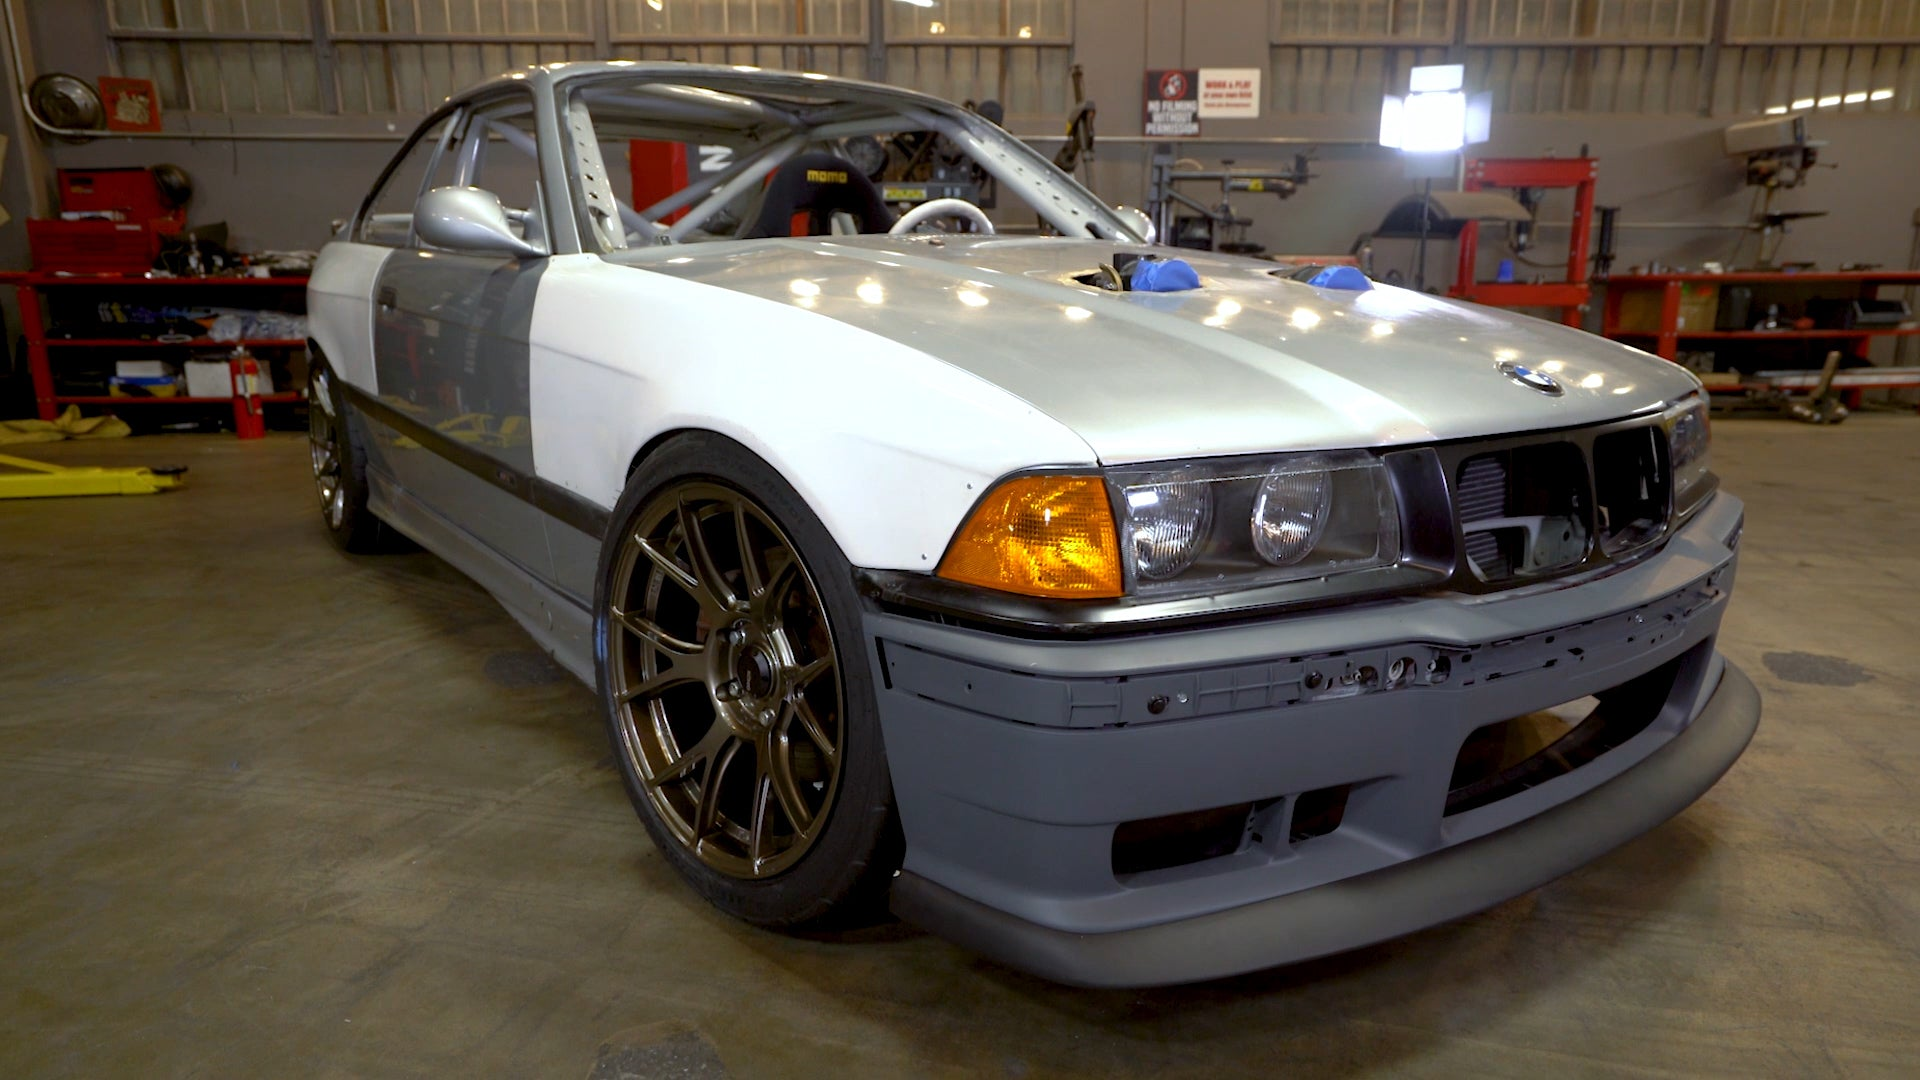 Alignment Setup For Drift And Grip Our Scrapyard M3 Gets New Kicks Hoonigan